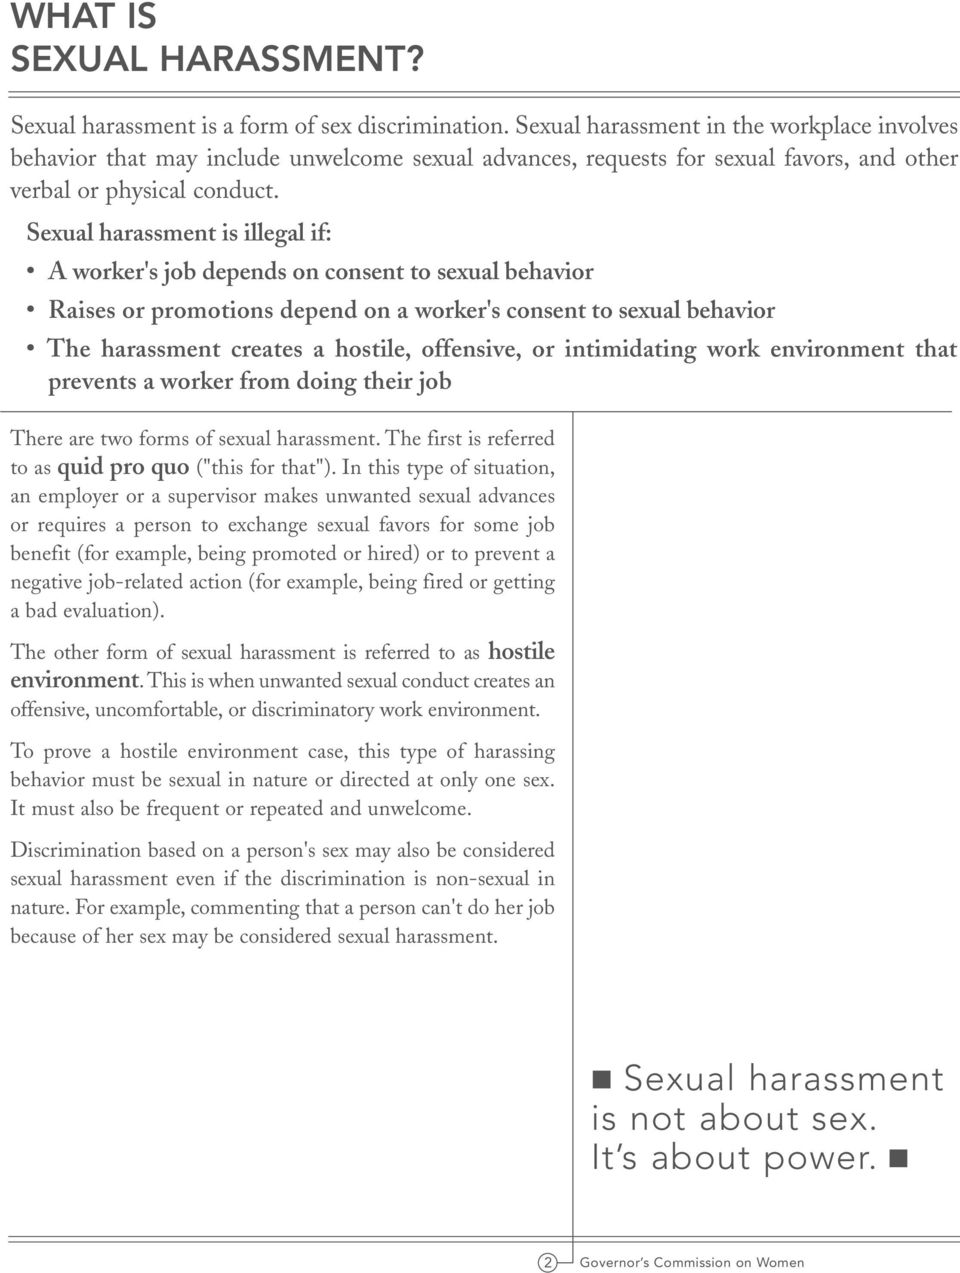 Sexual harassment creates a hostile environment